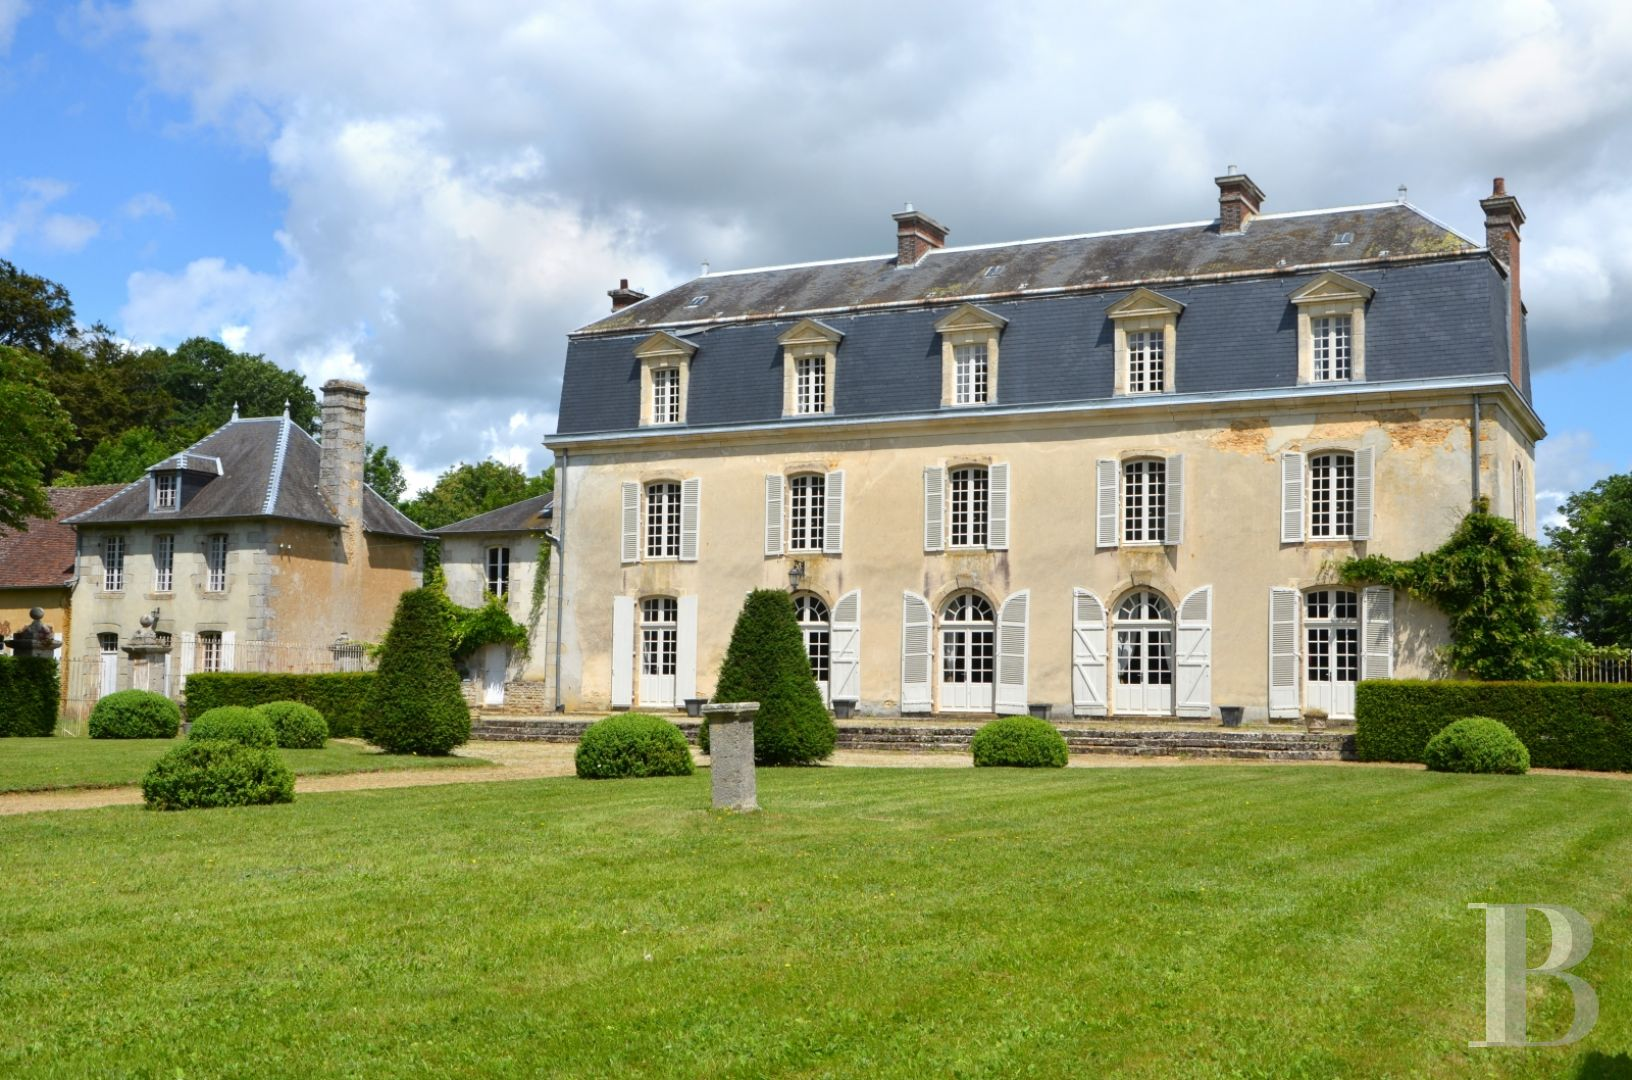 An 18th Century Chateau Its Chapel And Its Outbuildings In An Undulating Setting With Almost 14 Ha Of Woods And Grasslands To The South Of The